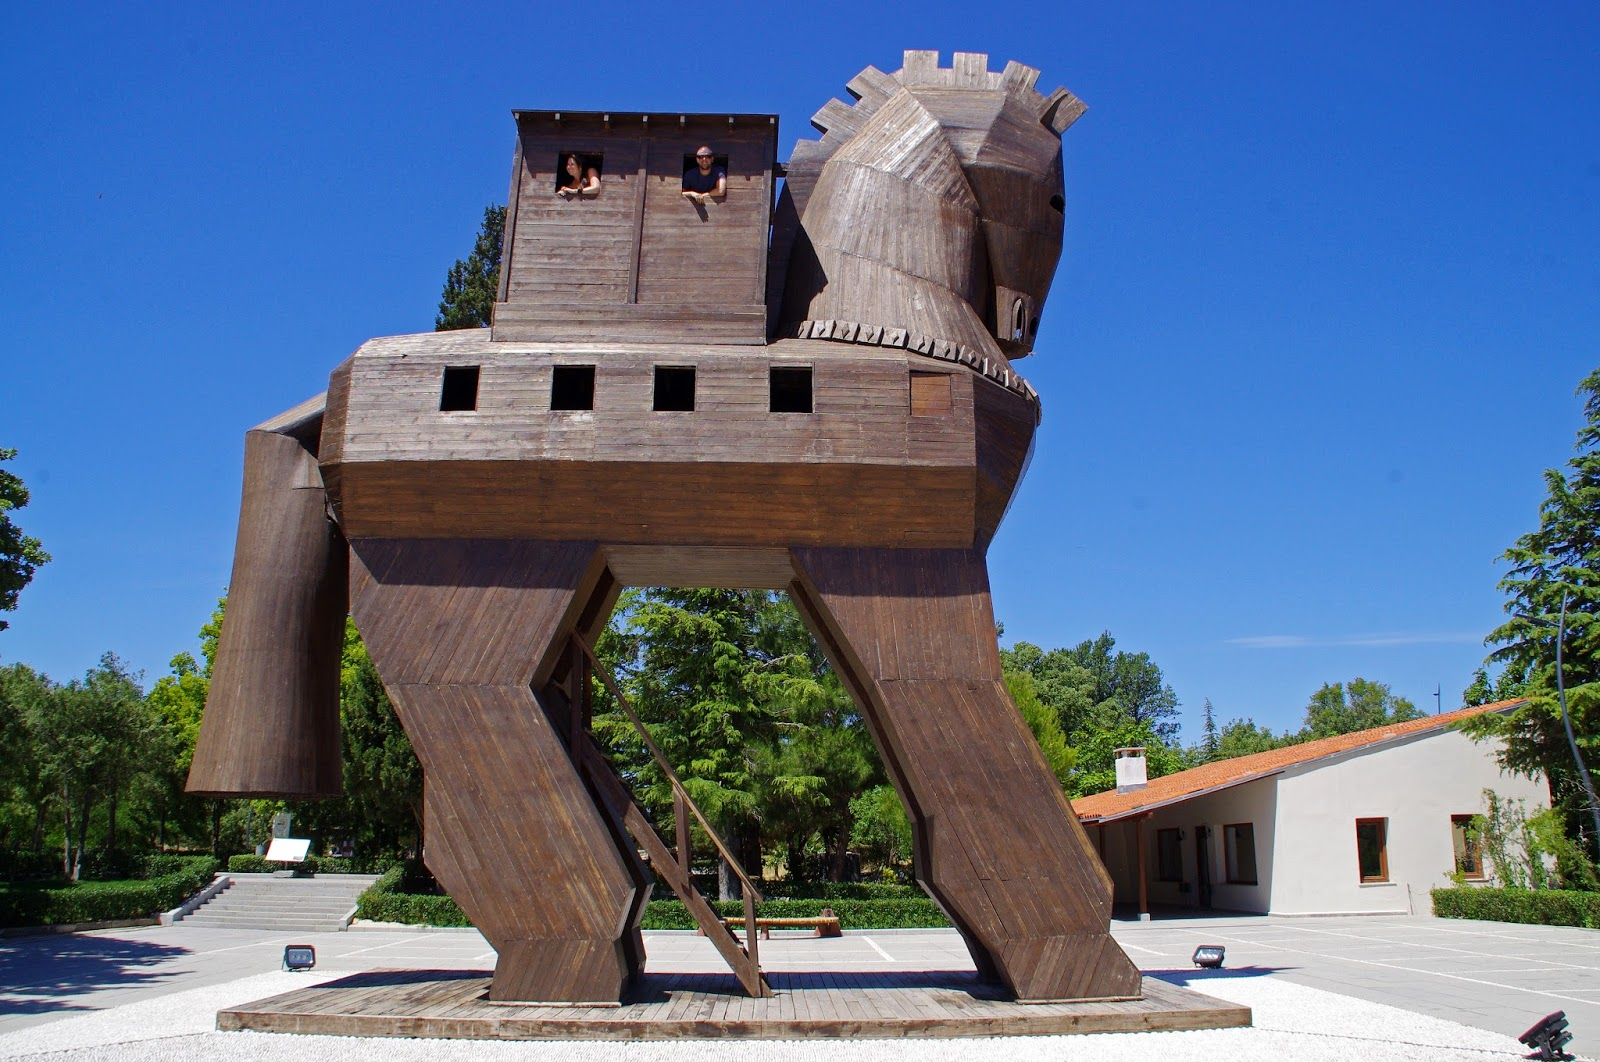 Couple in Trojan Horse in Troy